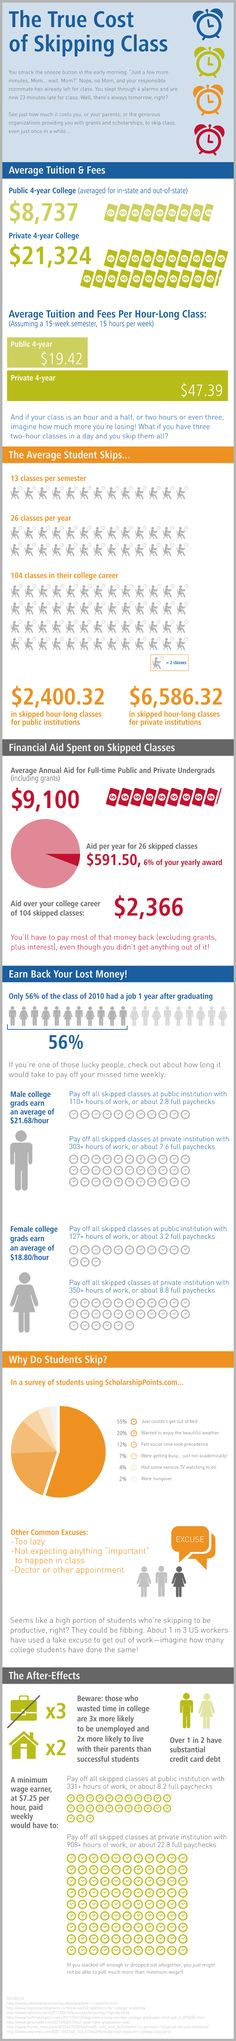 What Is The True Cost Of Skipping Class And Why Do Students Skip? #HigherEd #infographic